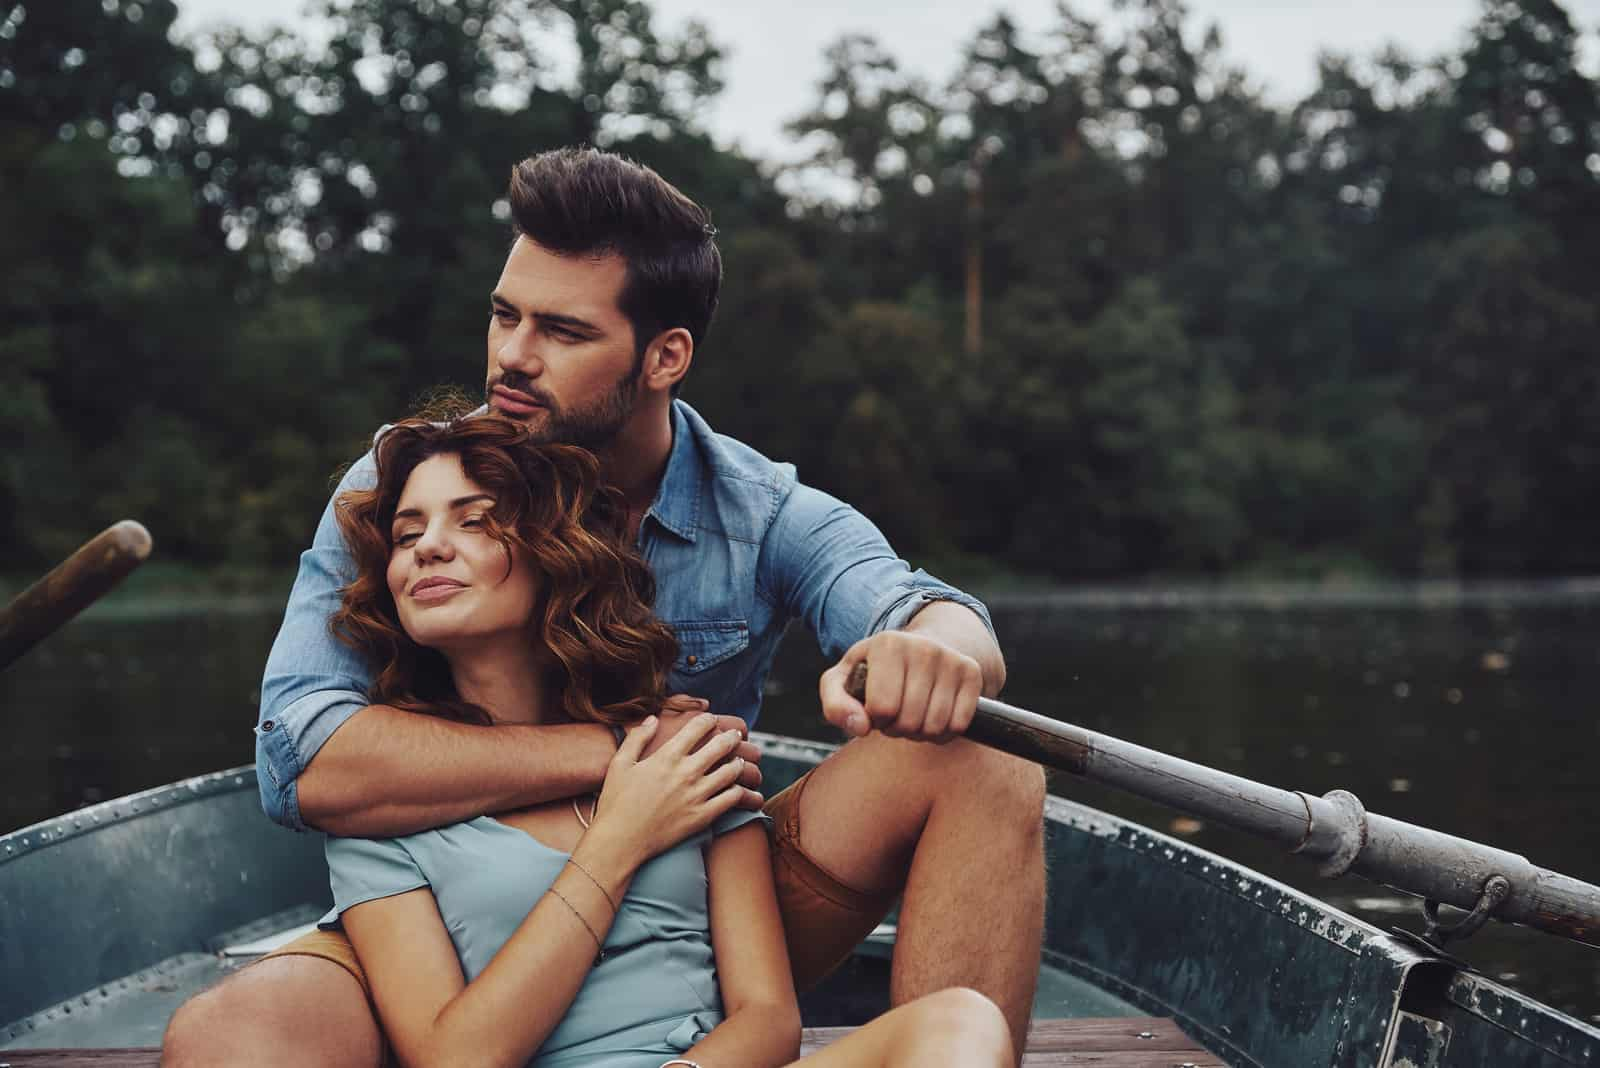 the man hugged the woman as they sat in the boat